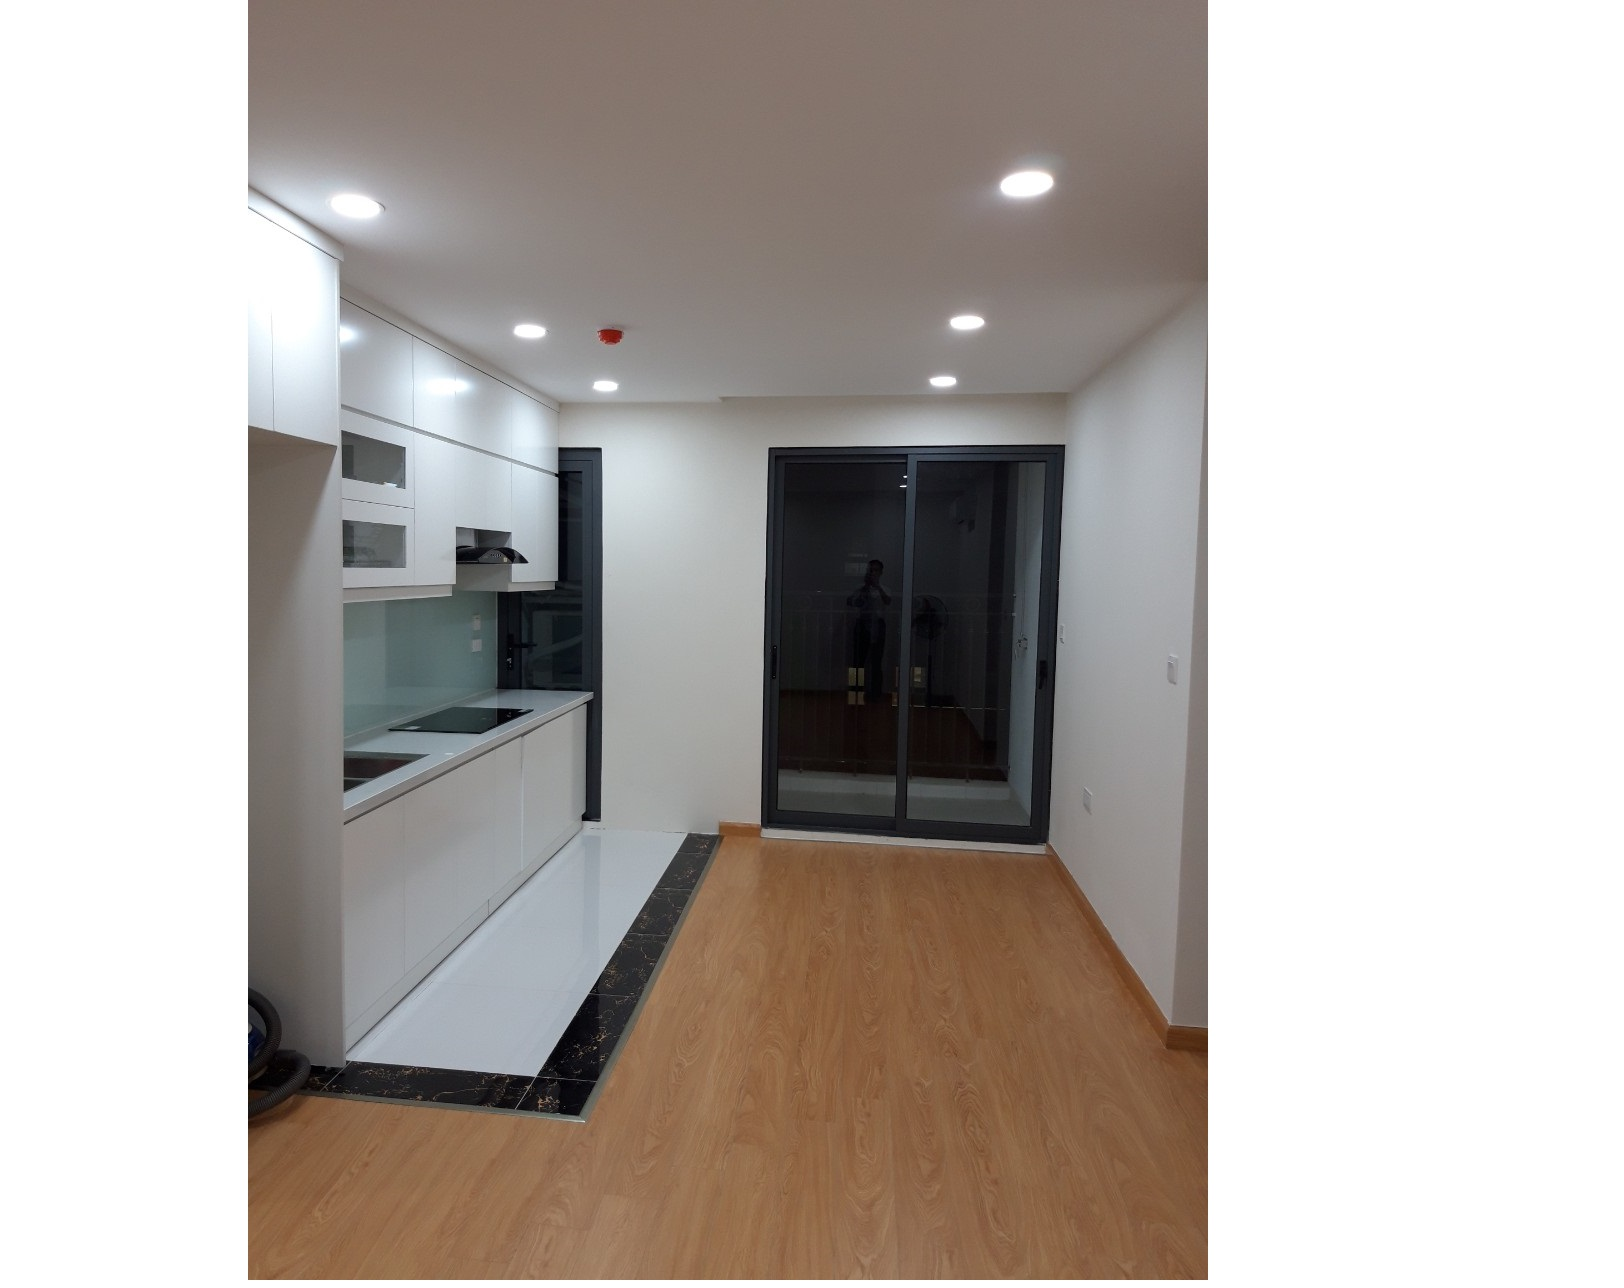 1 bedroom apartment for rent in The Garden Hills, Tran Binh street, Cau Giay district